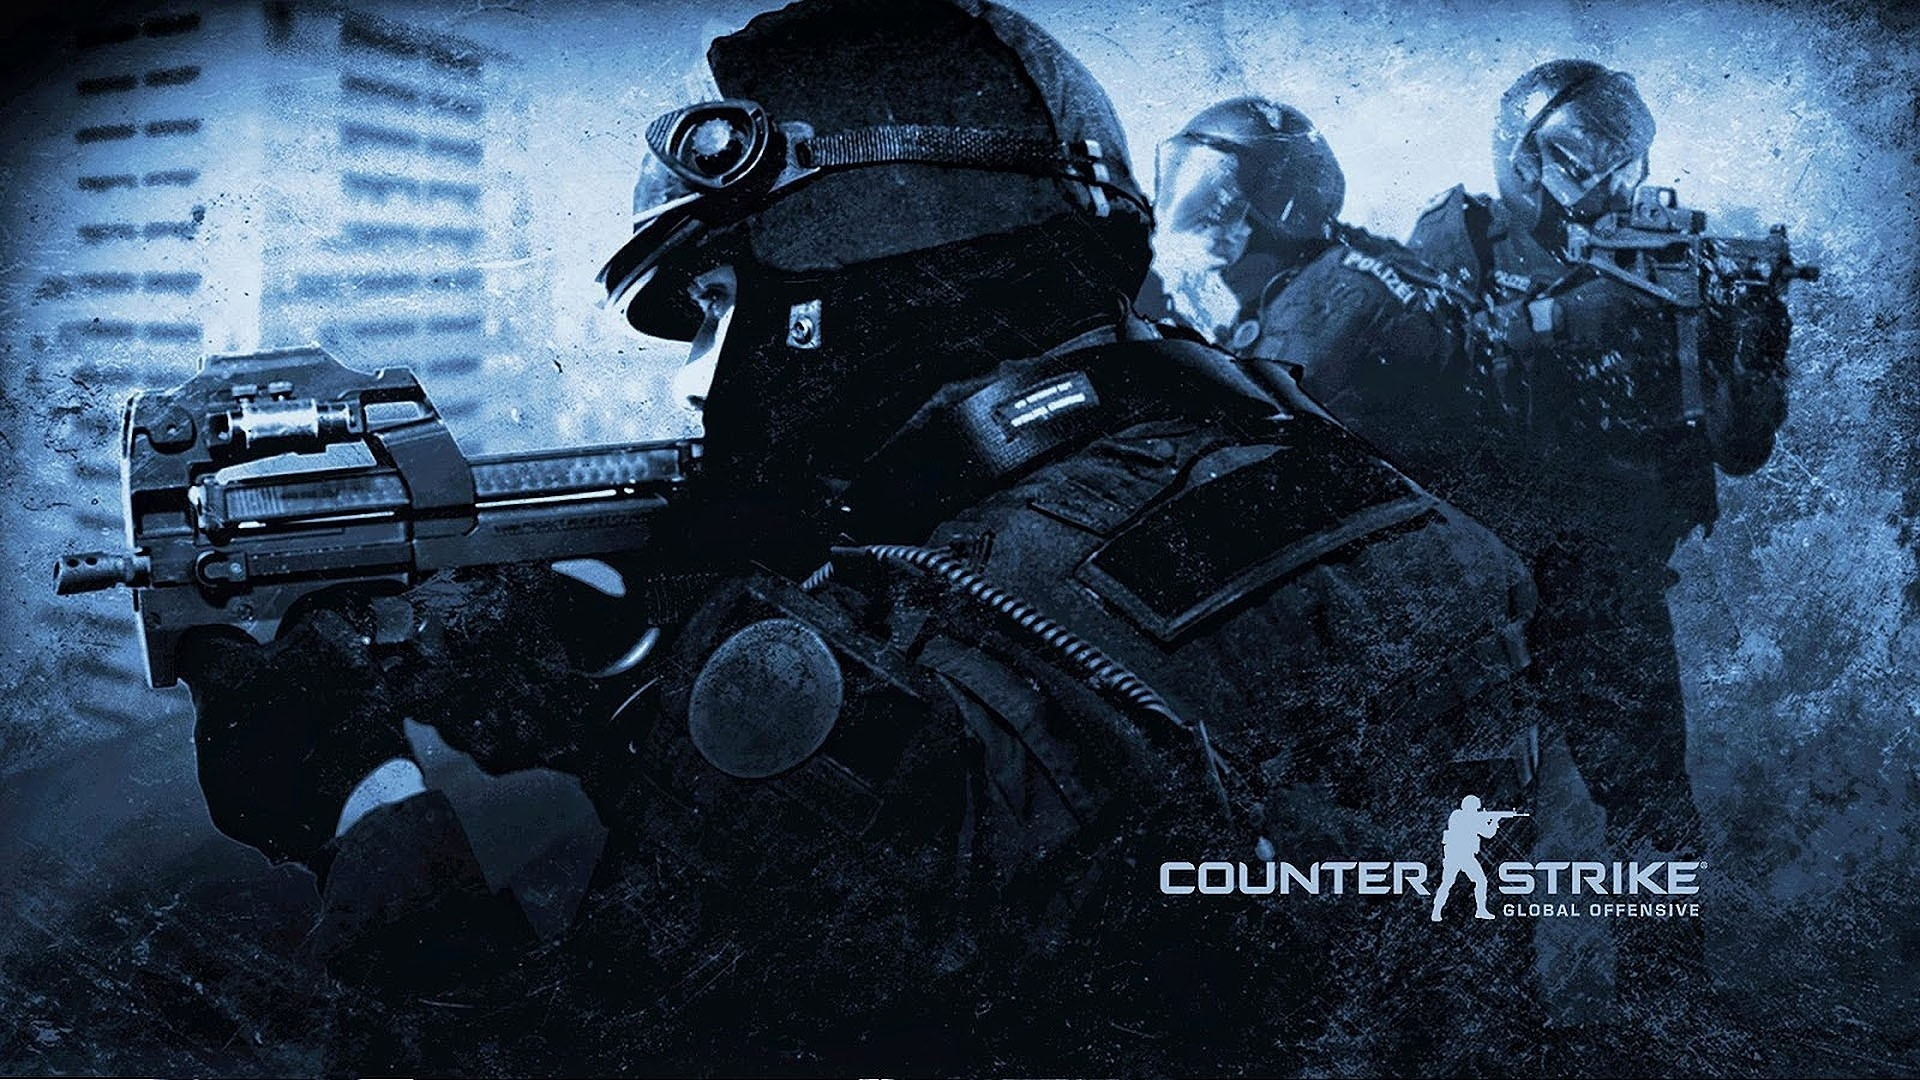 counter strike wallpaper gallery (59+ images)